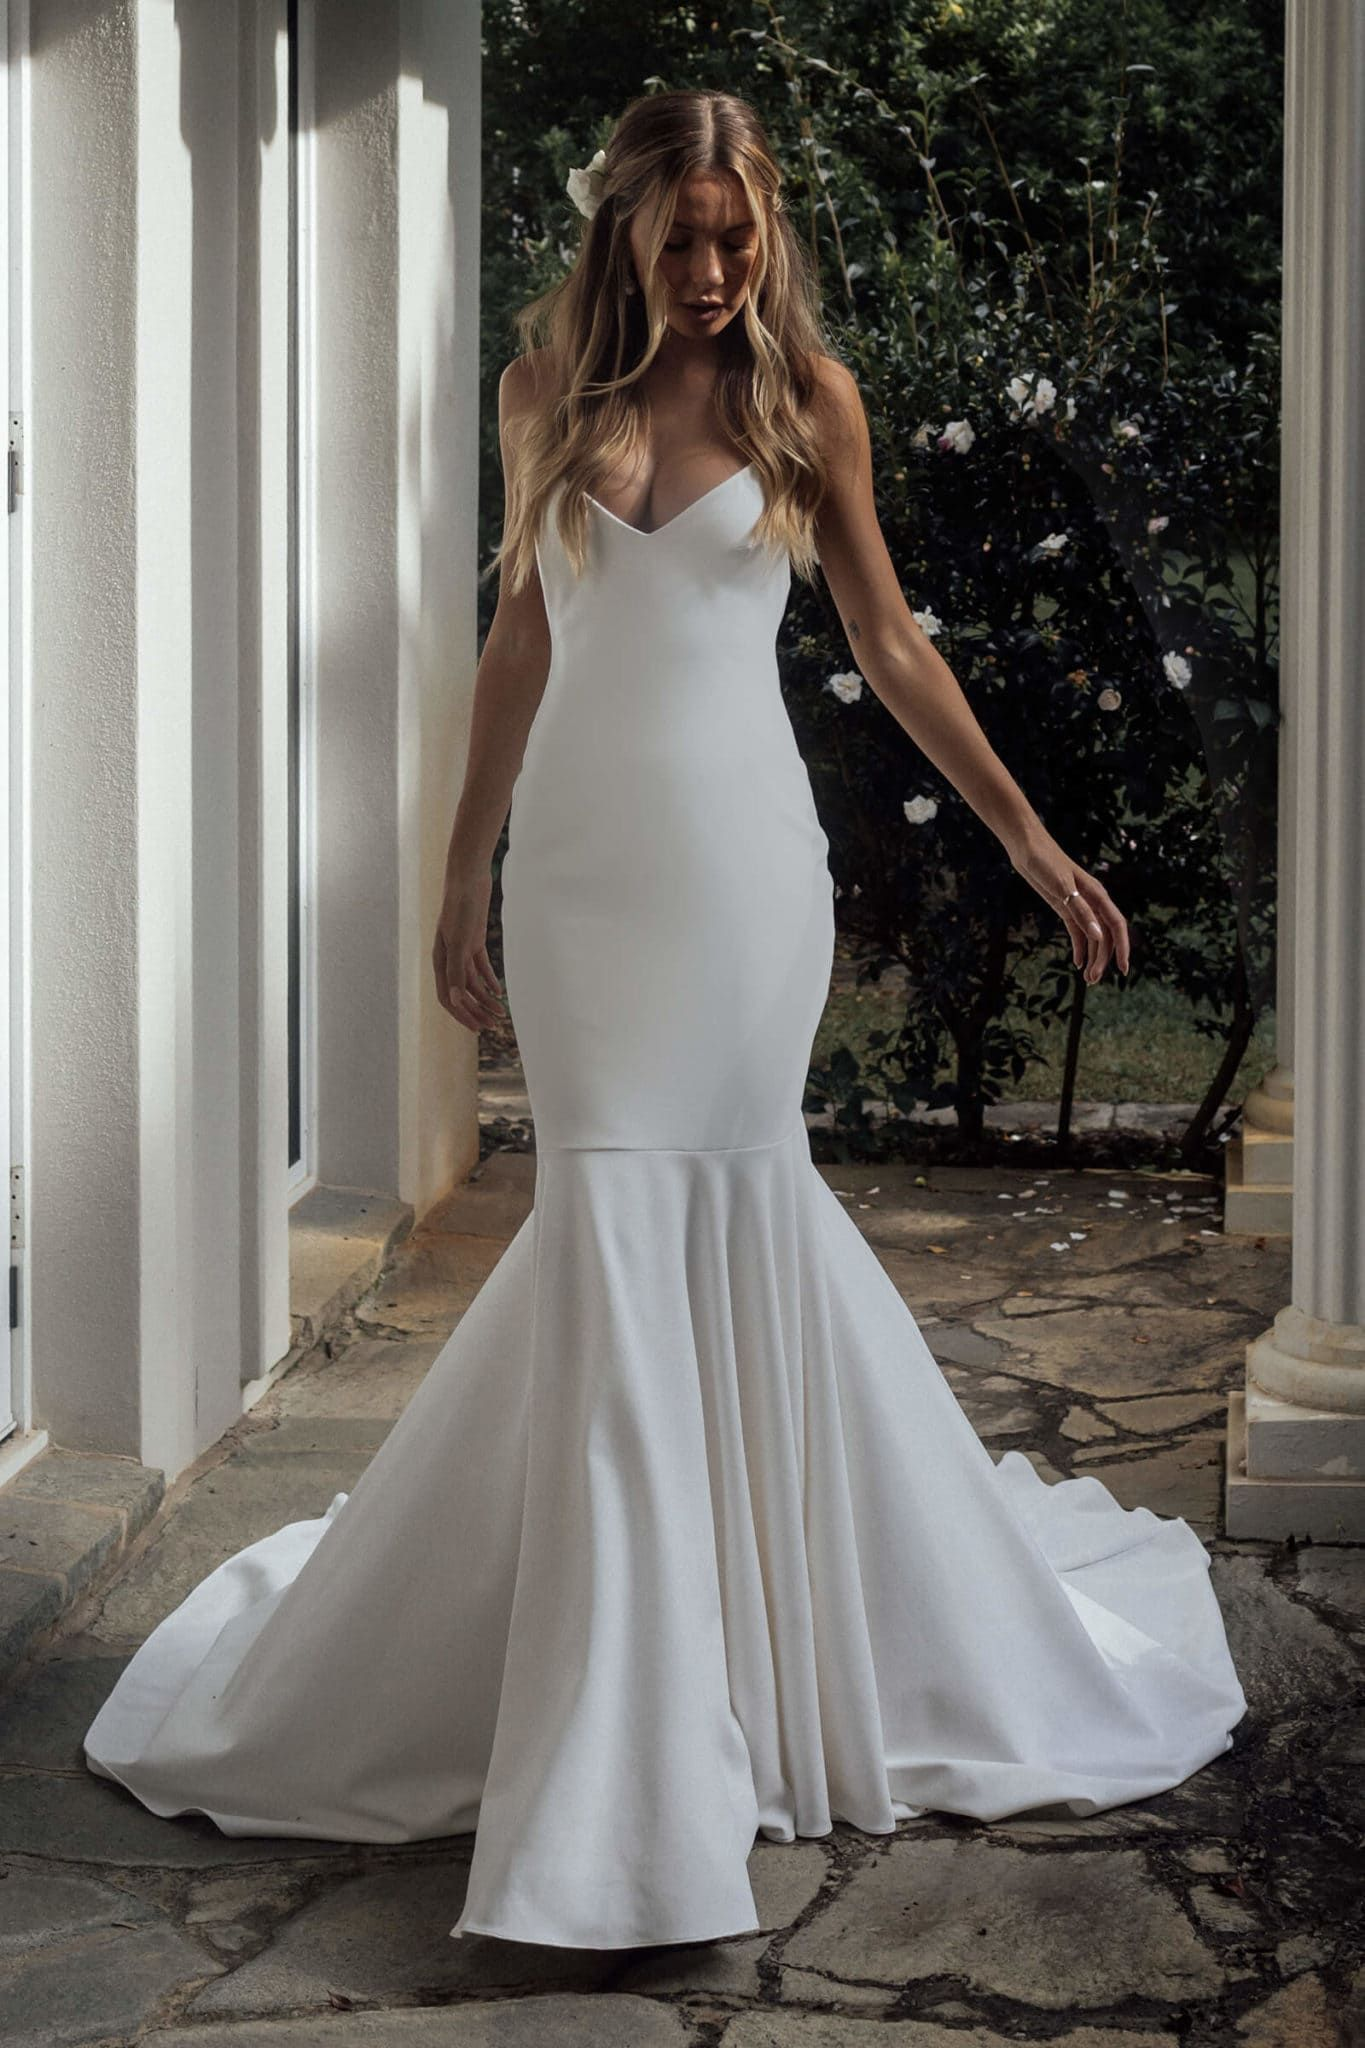 Clo Crepe Luxurious Wedding Dress Grace Loves Lace in